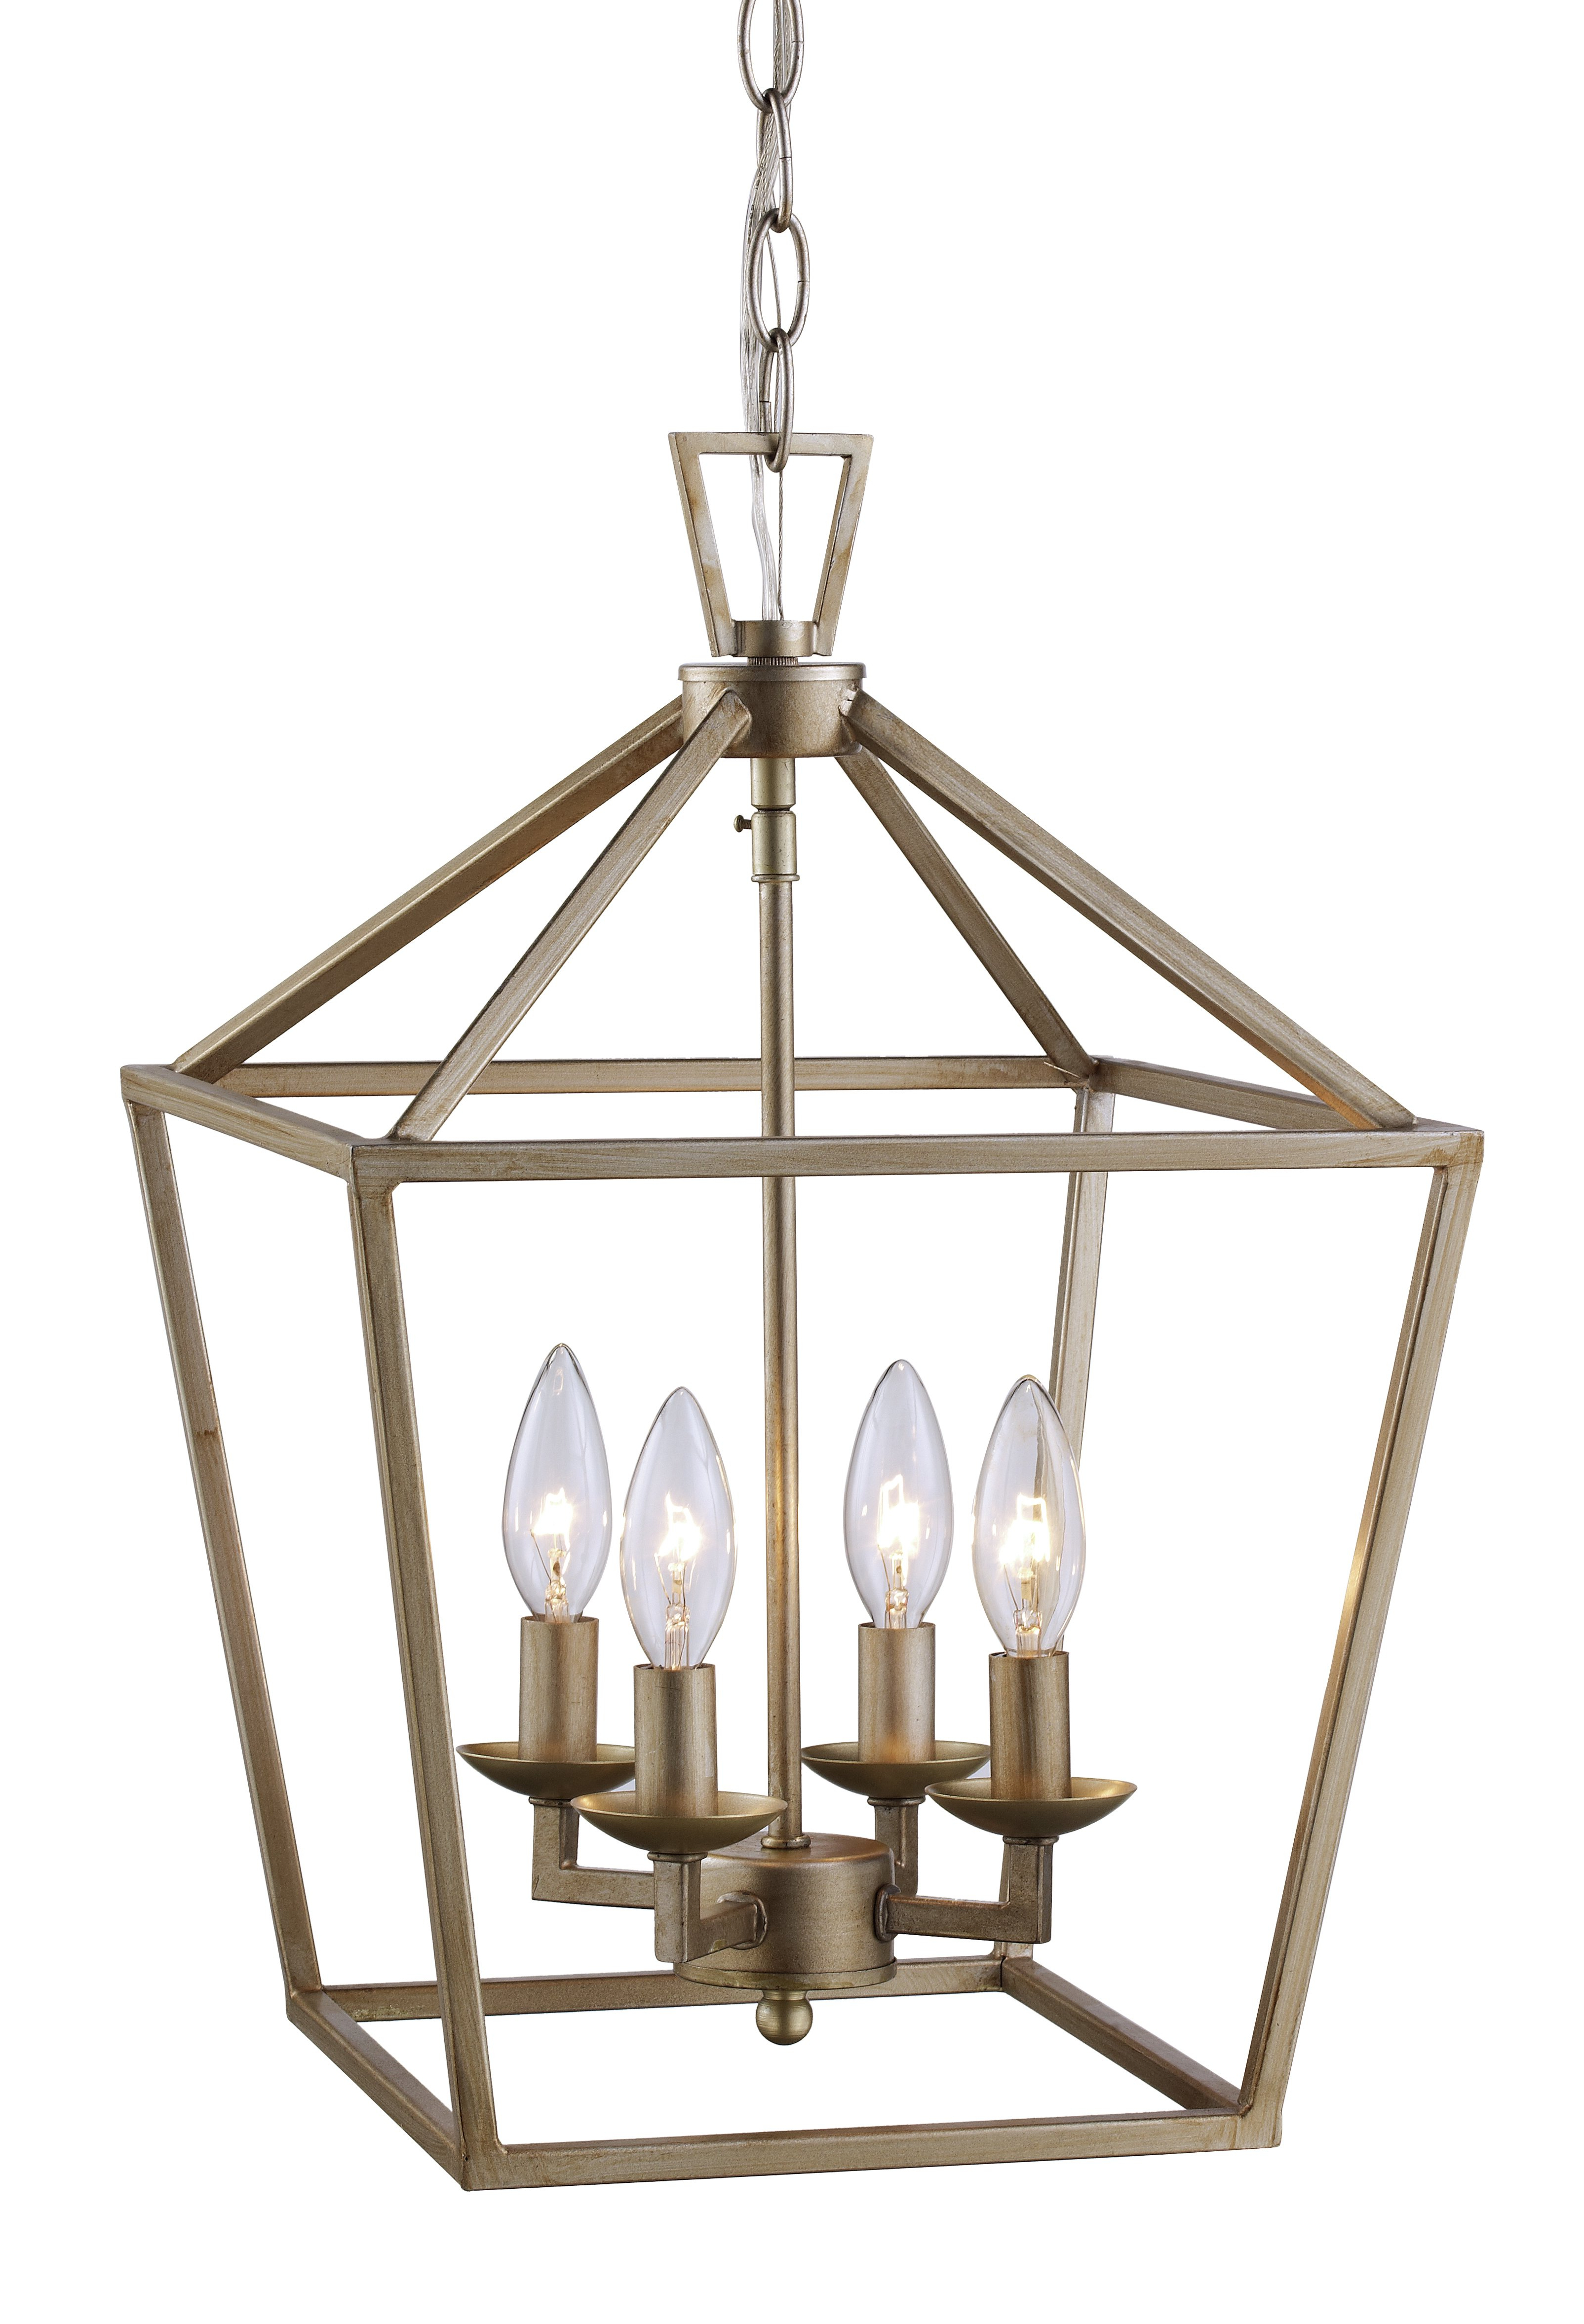 Laurel Foundry Modern Farmhouse Carmen 4 Light Lantern Geometric Pendant Regarding Best And Newest Louanne 1 Light Lantern Geometric Pendants (View 15 of 25)